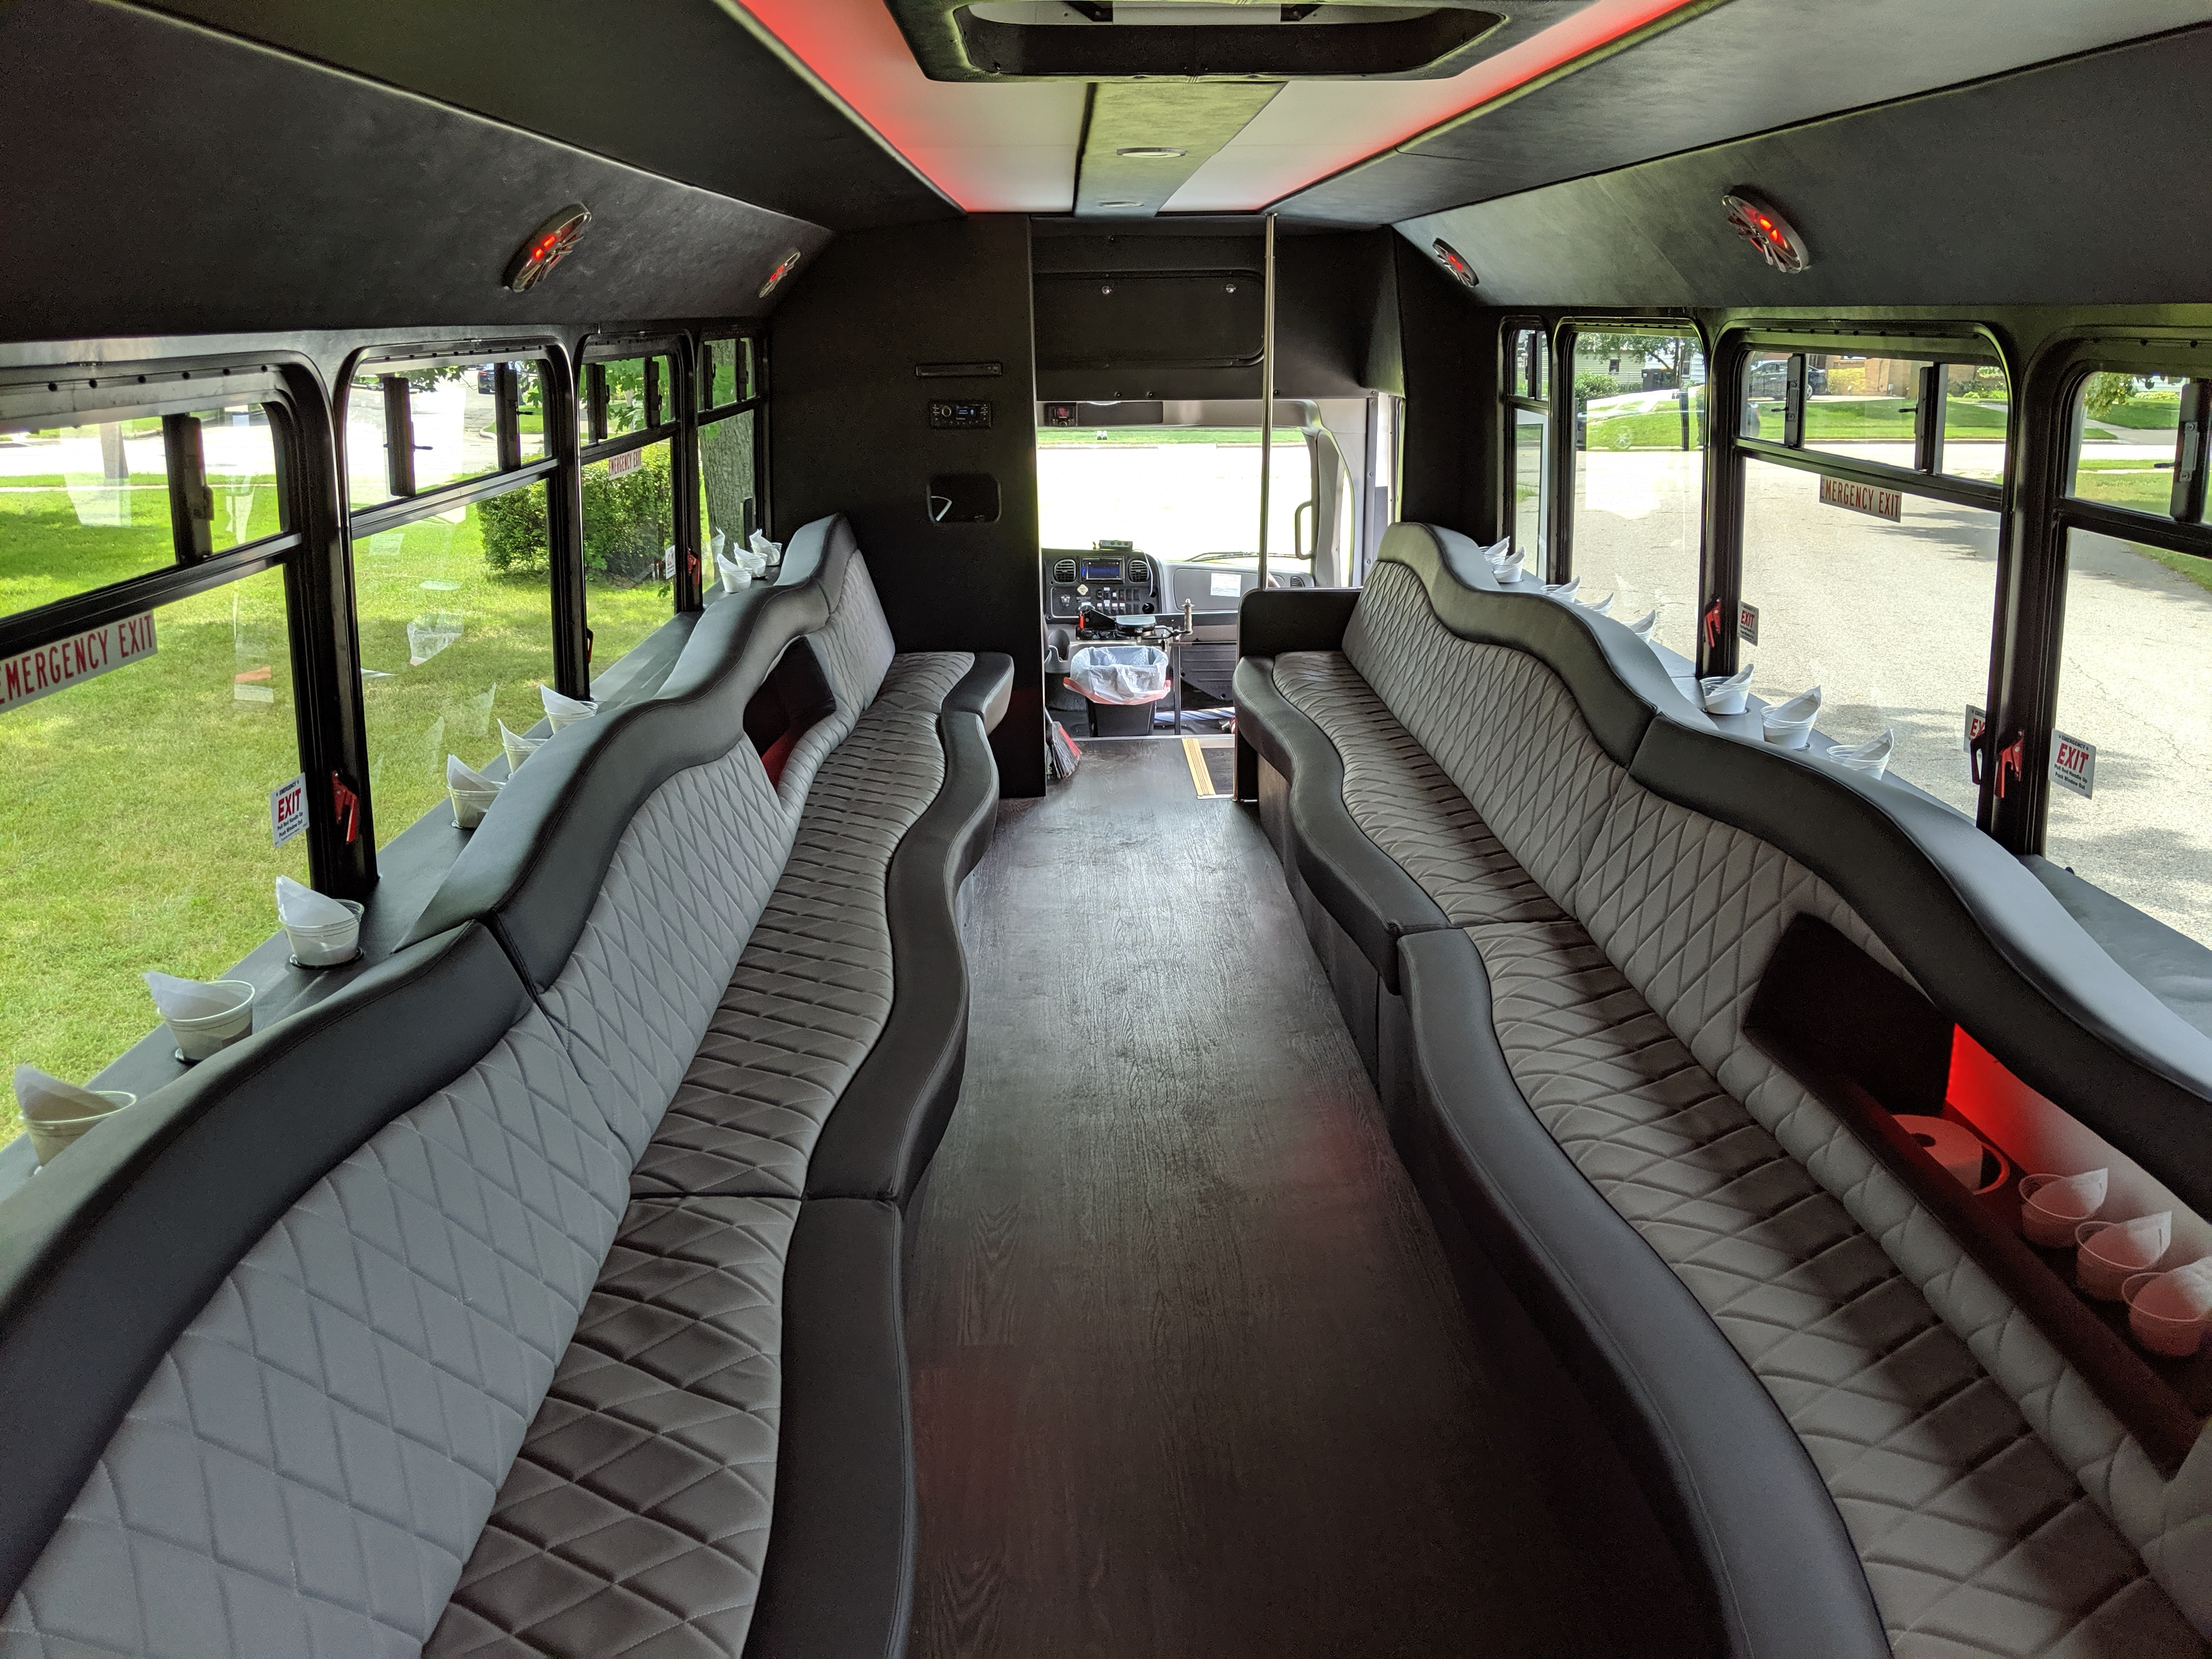 30 Passenger Luxury Limo Bus Interior 4